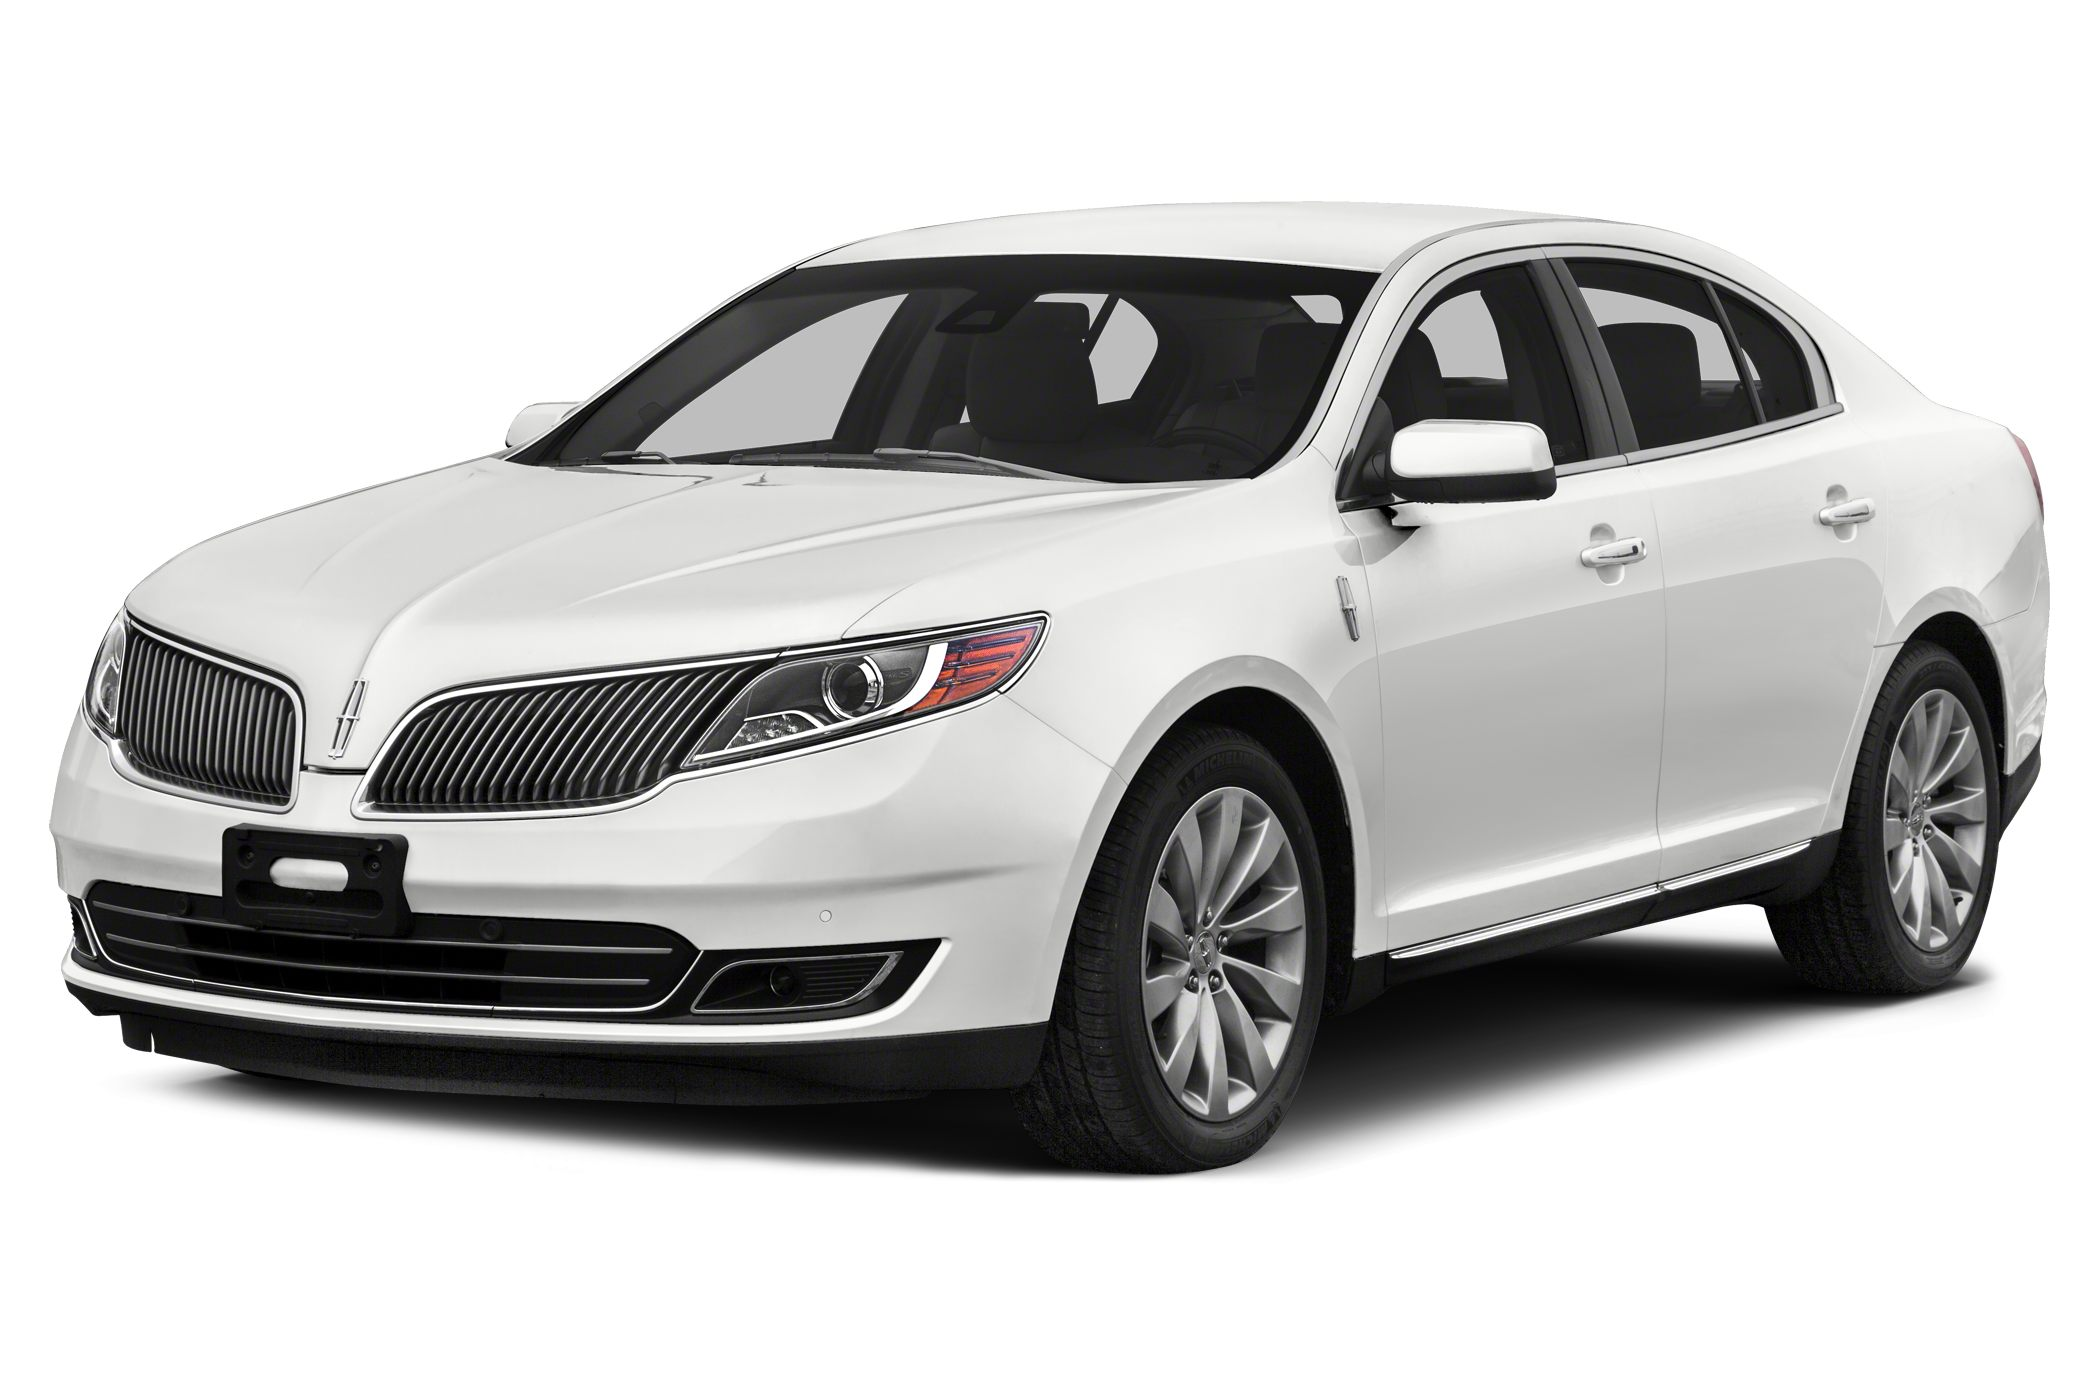 2015 Lincoln MKS Base Sedan for sale in Bonita Springs for $40,440 with 37 miles.